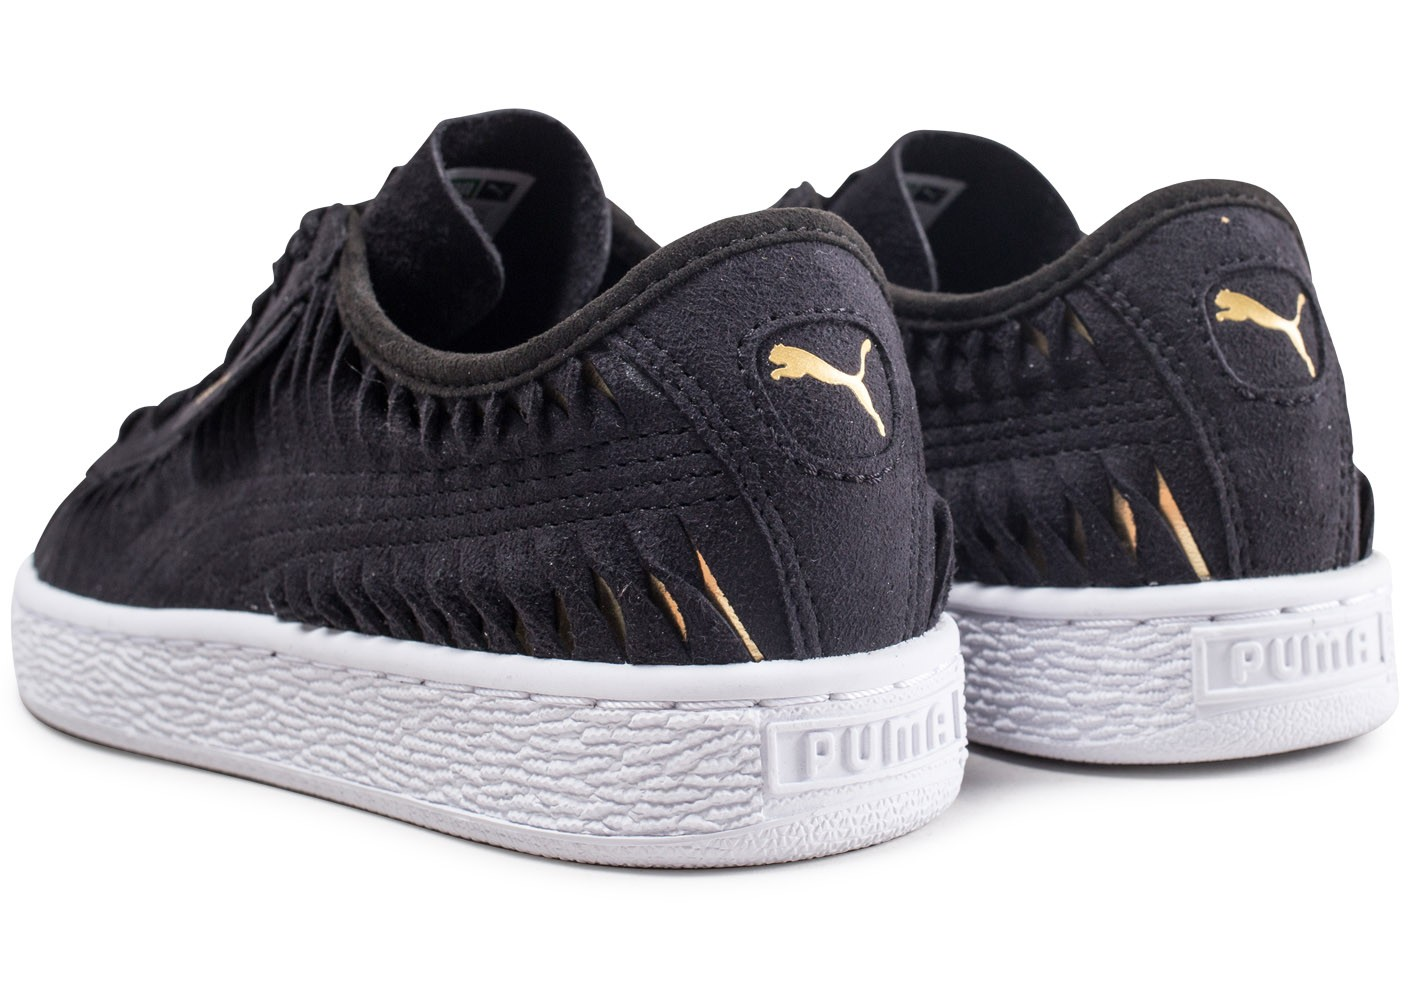 official photos f3d8b 7532f Puma Suede Entwine noire - Chaussures Chaussures - Chausport